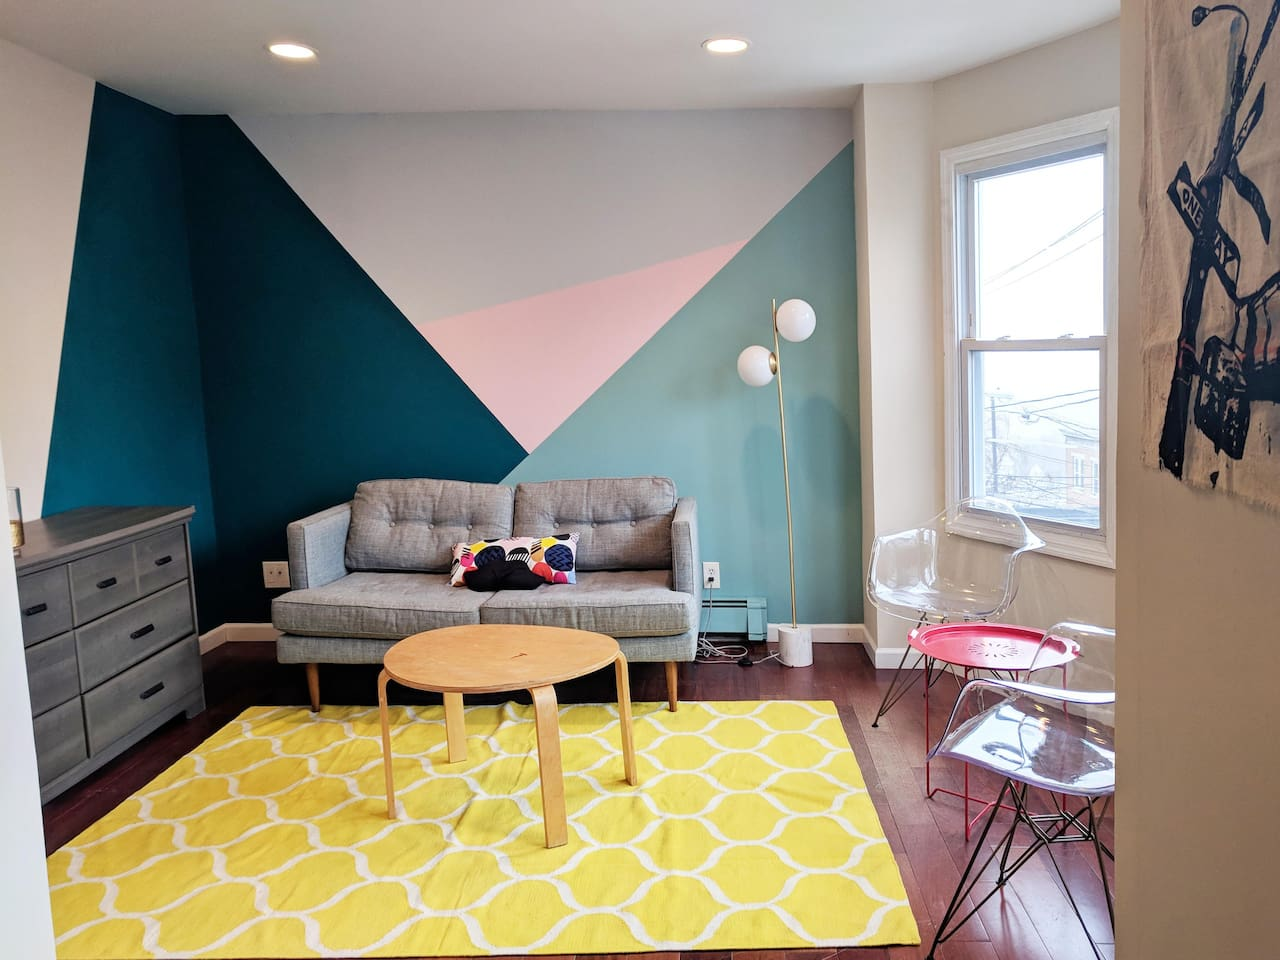 Bright and stylish common area for hanging out, having coffee or playing board games